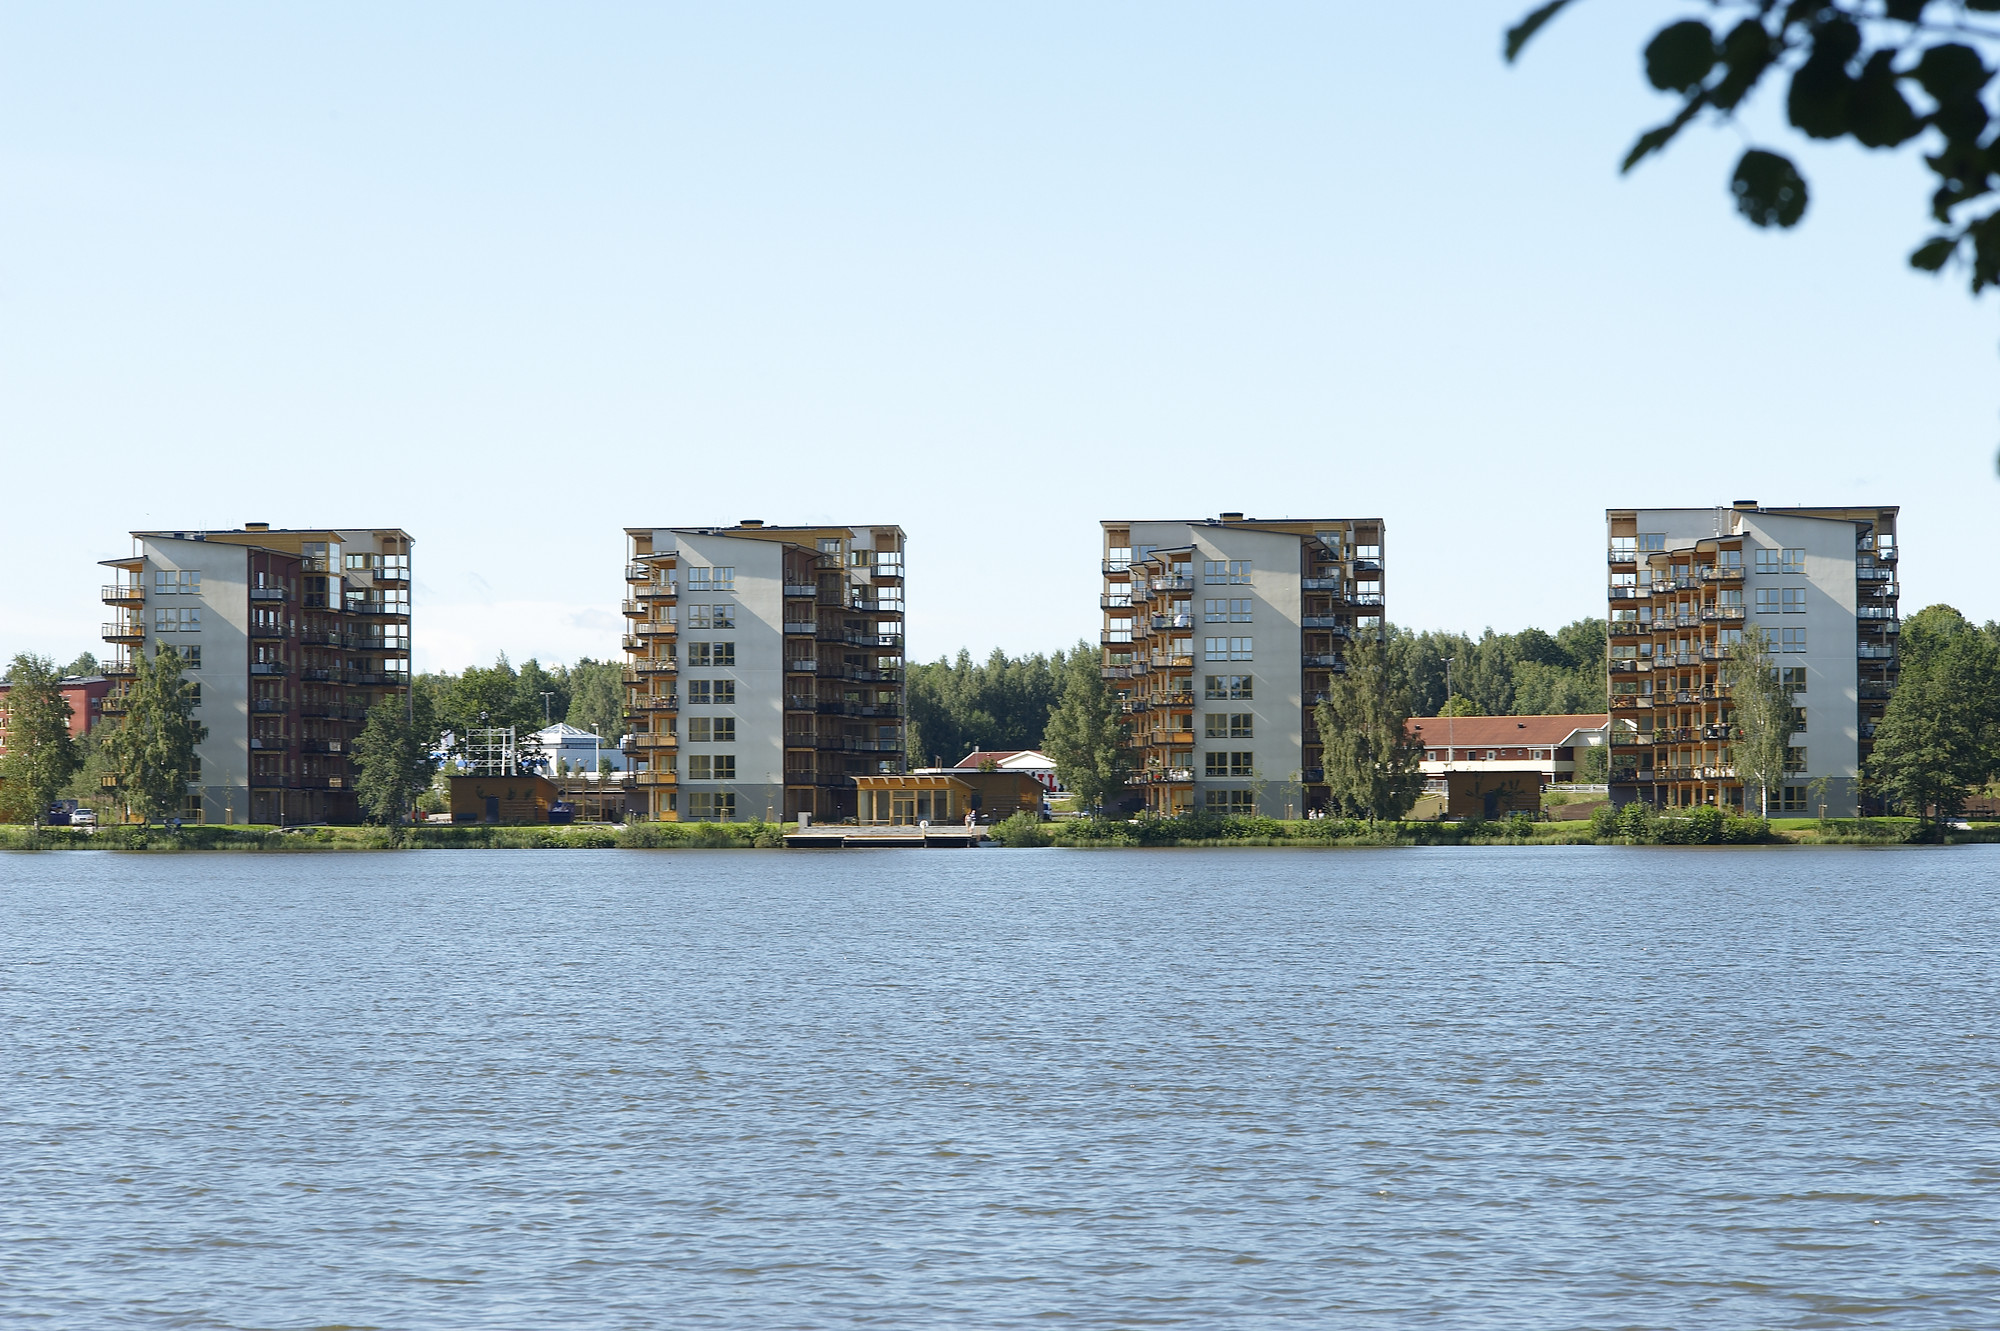 US Department of Agriculture Launches $2 Million Tall Wood Building Prize Competition, Limnologen in Växjö, Sweden. Image Courtesy of Midroc Property Development